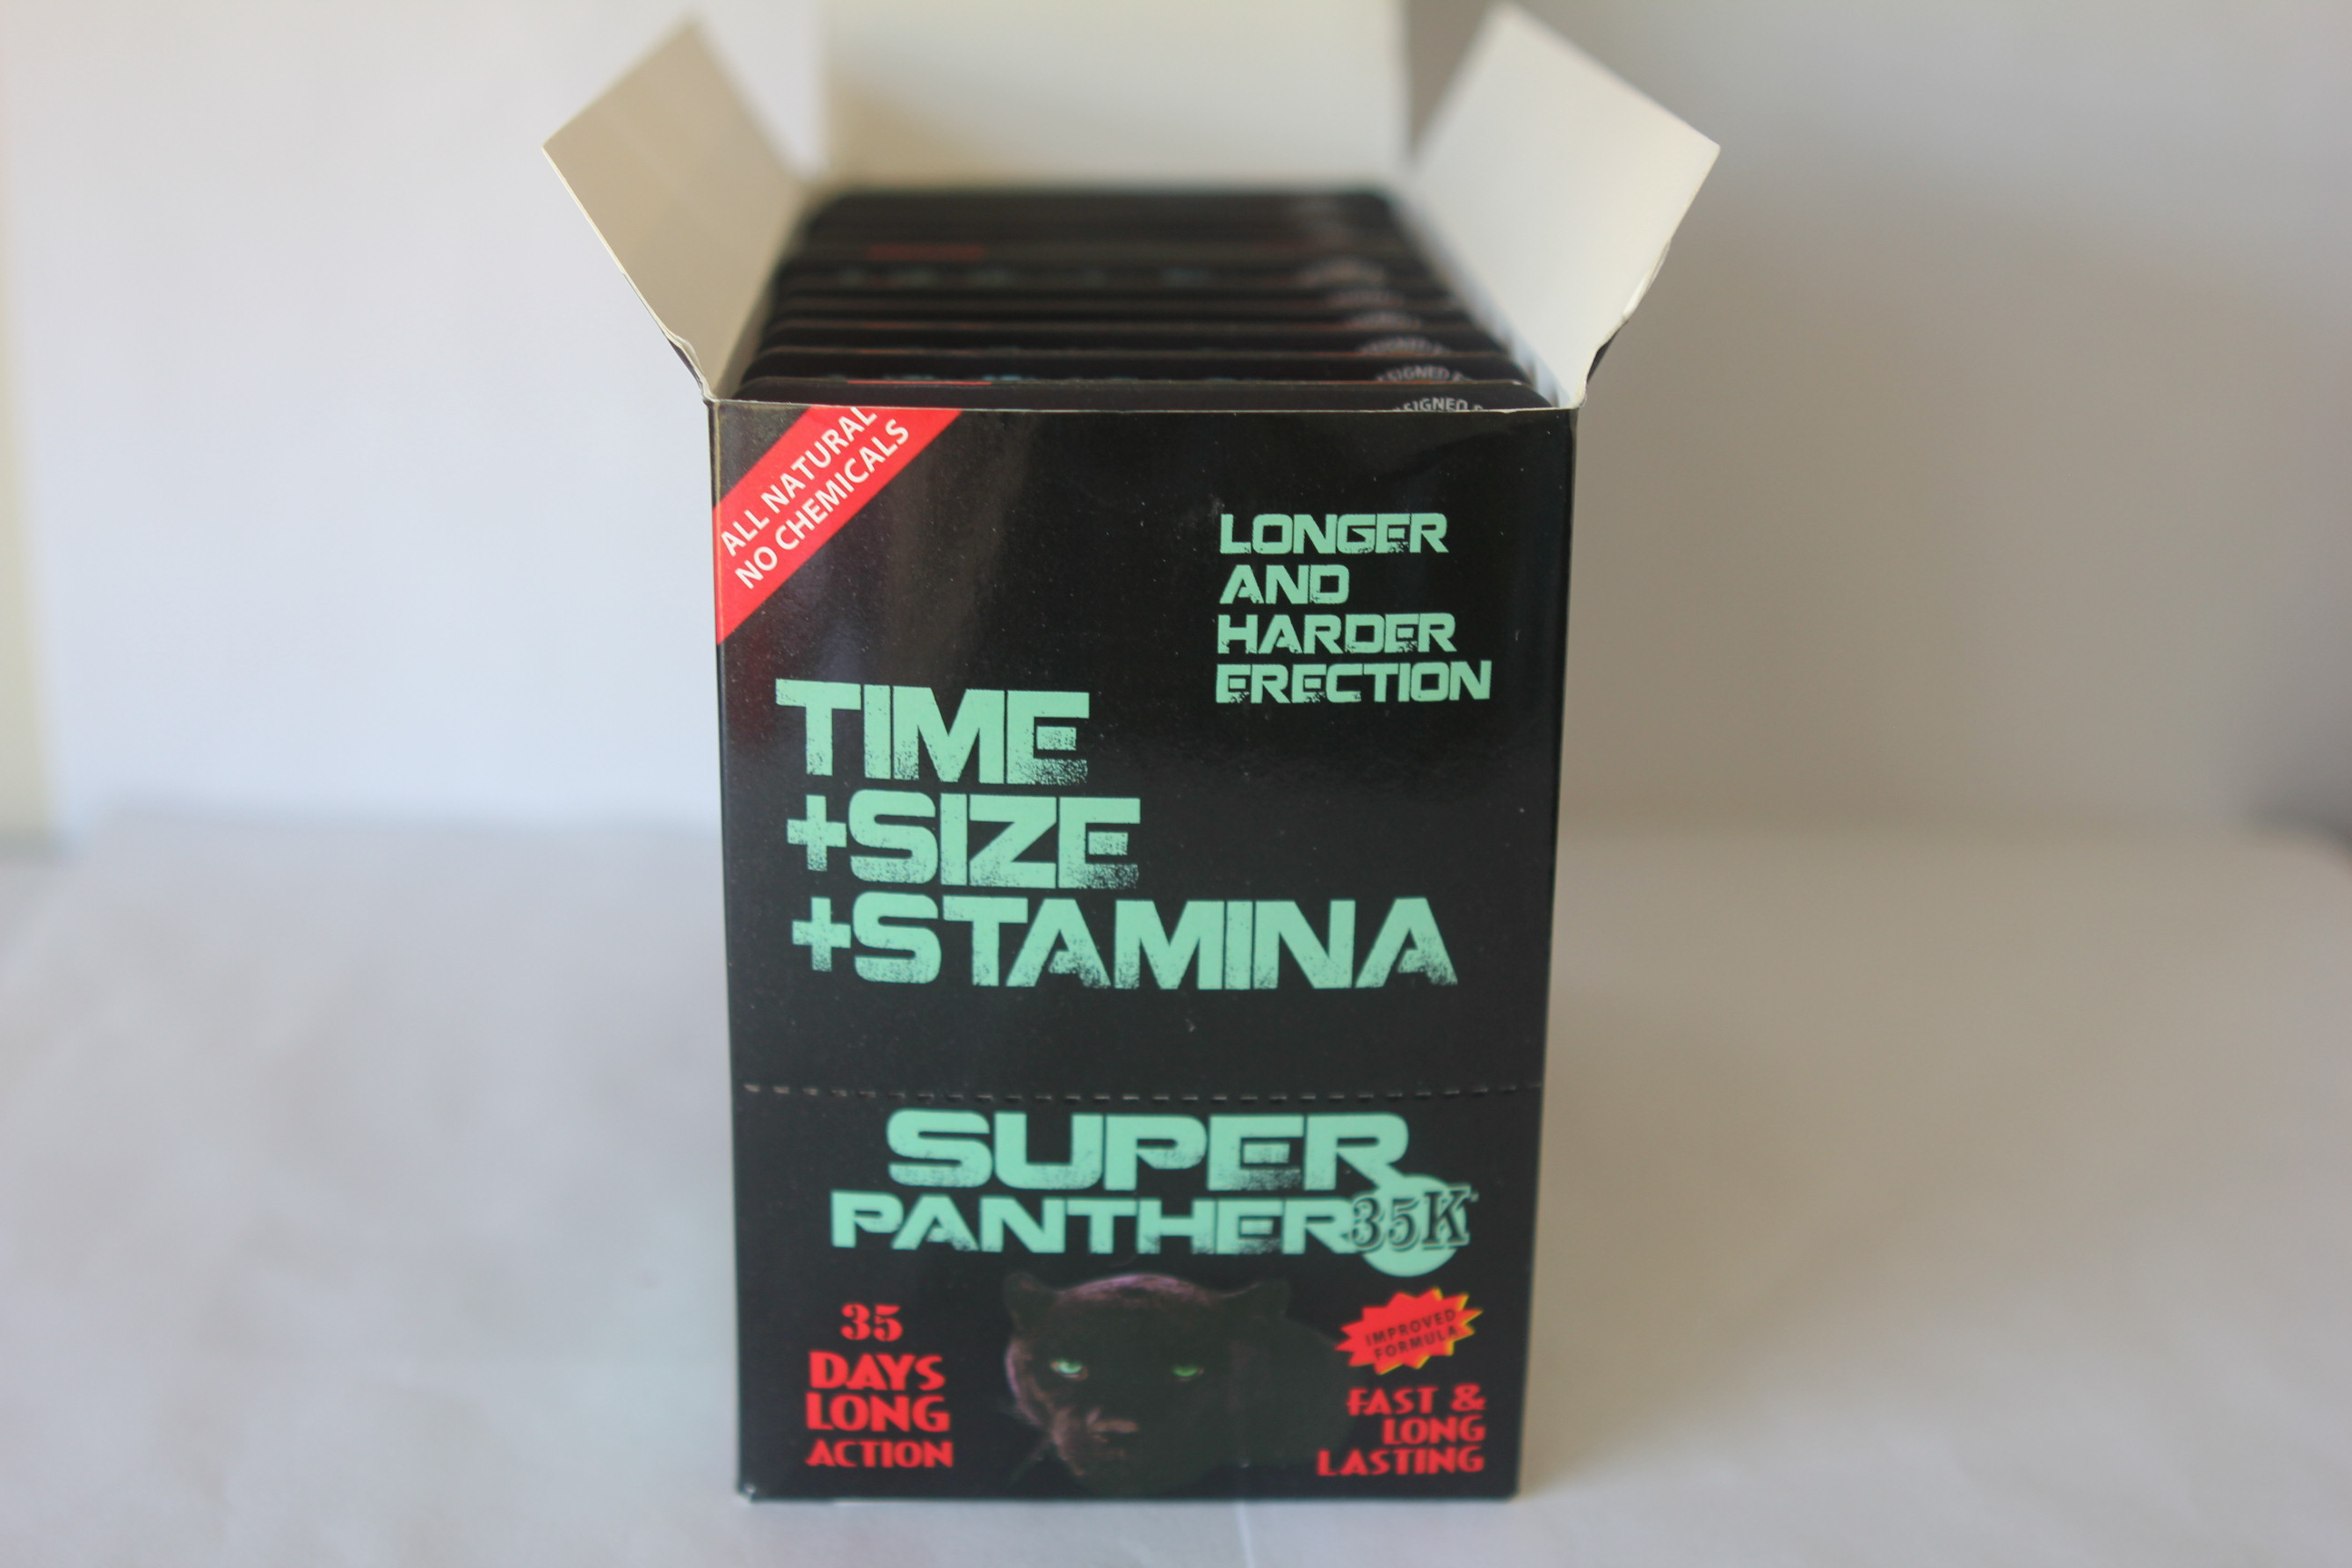 Super Panther 35K Male Enhancement 1 Box(20ct)